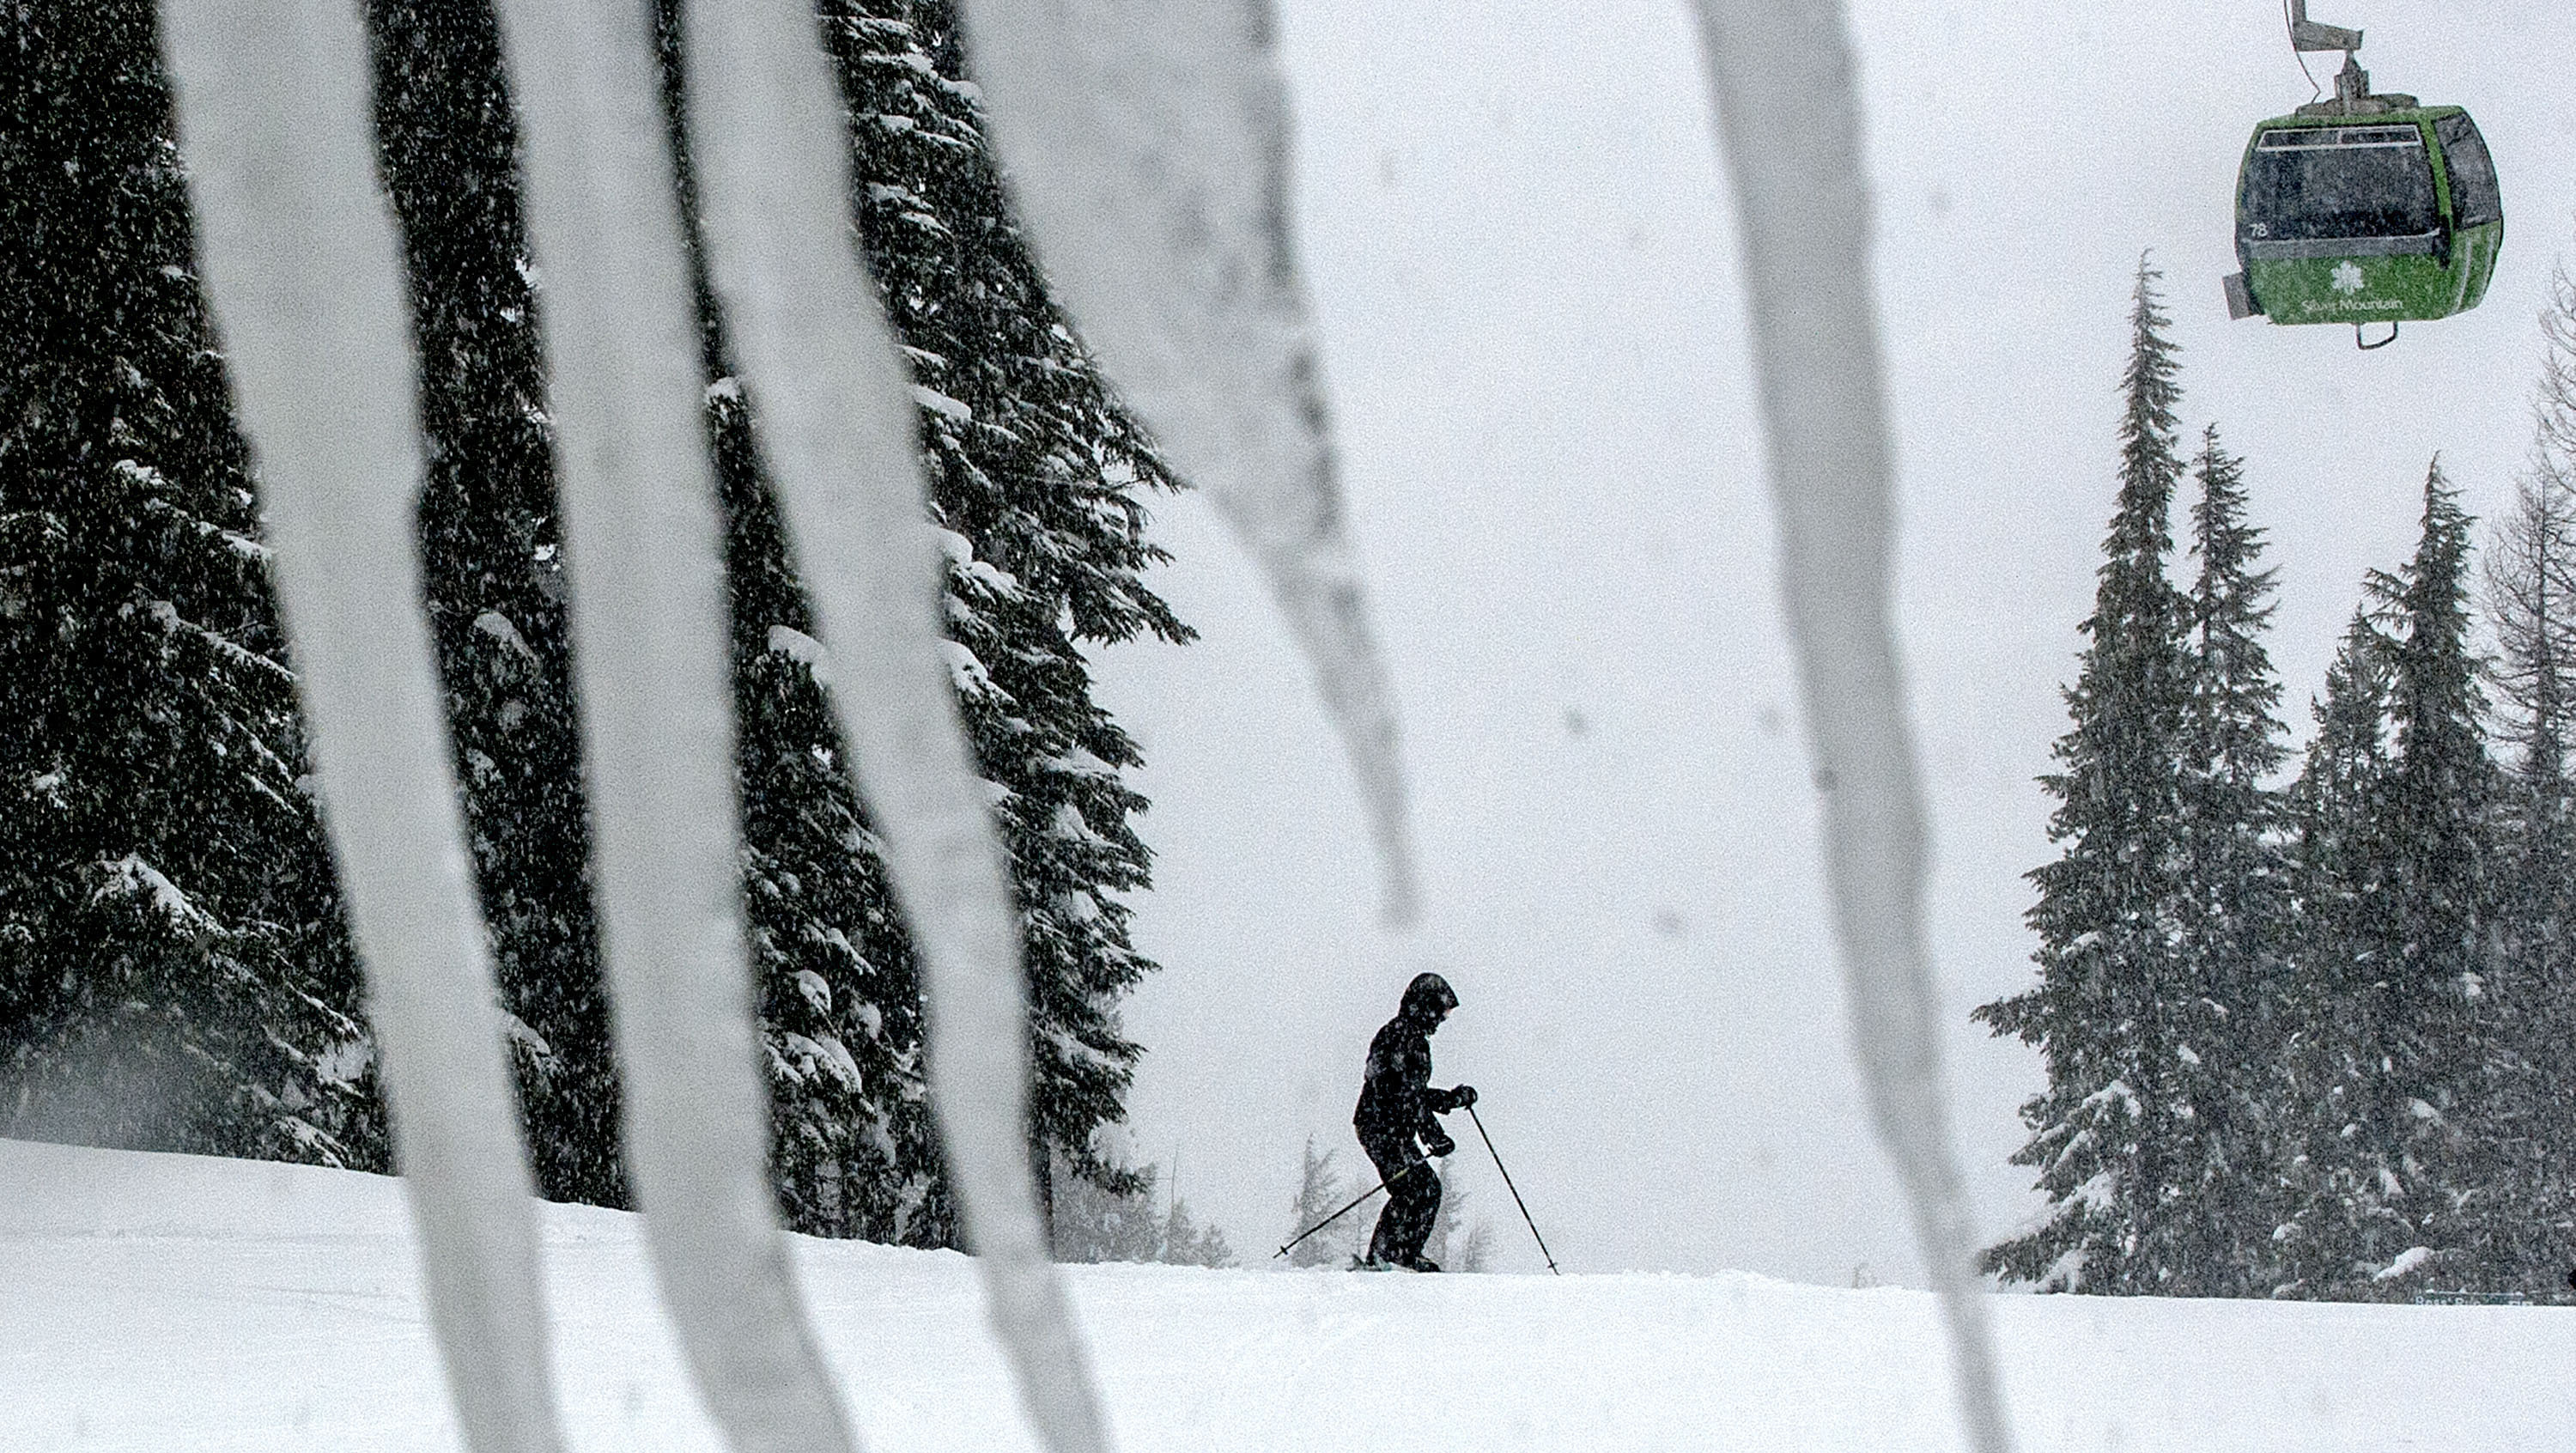 1 skier still missing after deadly avalanche at Idaho resort